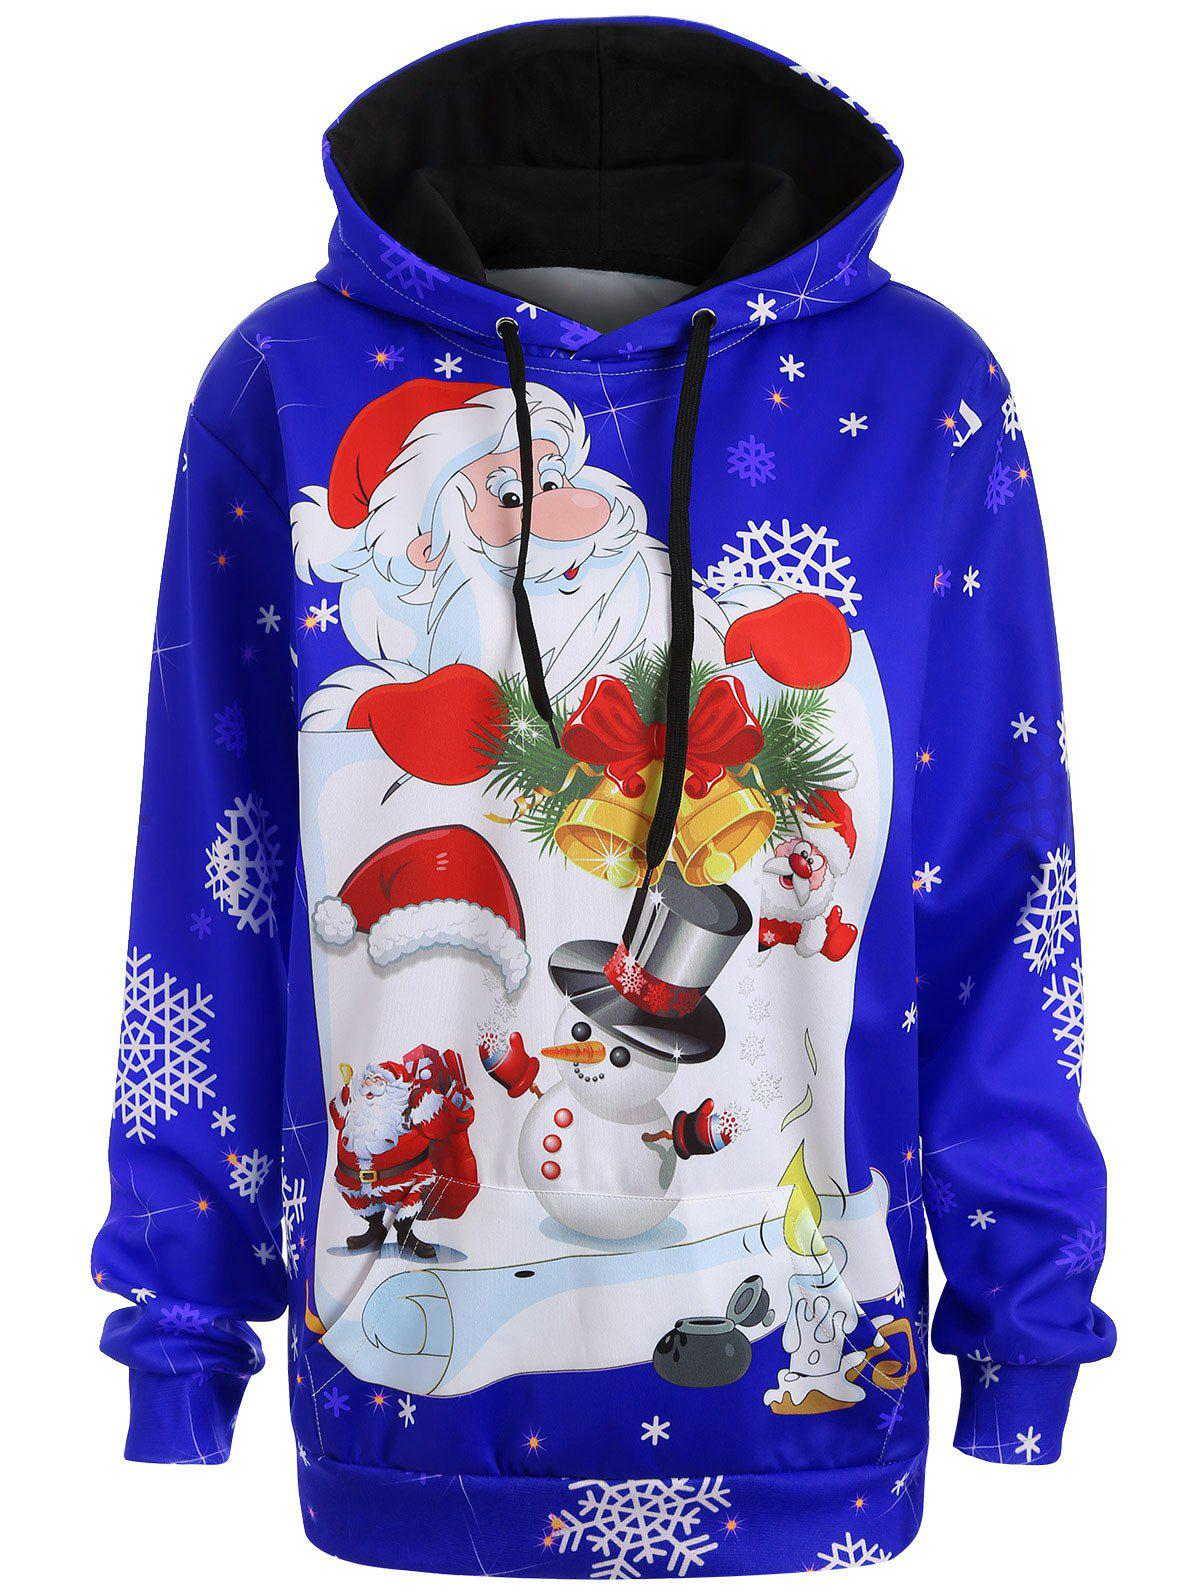 Christmas Plus Size Snowman Kangaroo Pocket HoodieWOMEN<br><br>Size: L; Color: BLUE; Material: Polyester; Shirt Length: Long; Sleeve Length: Full; Style: Casual; Pattern Style: Figure; Season: Fall,Spring; Weight: 0.3700kg; Package Contents: 1 x Hoodie;